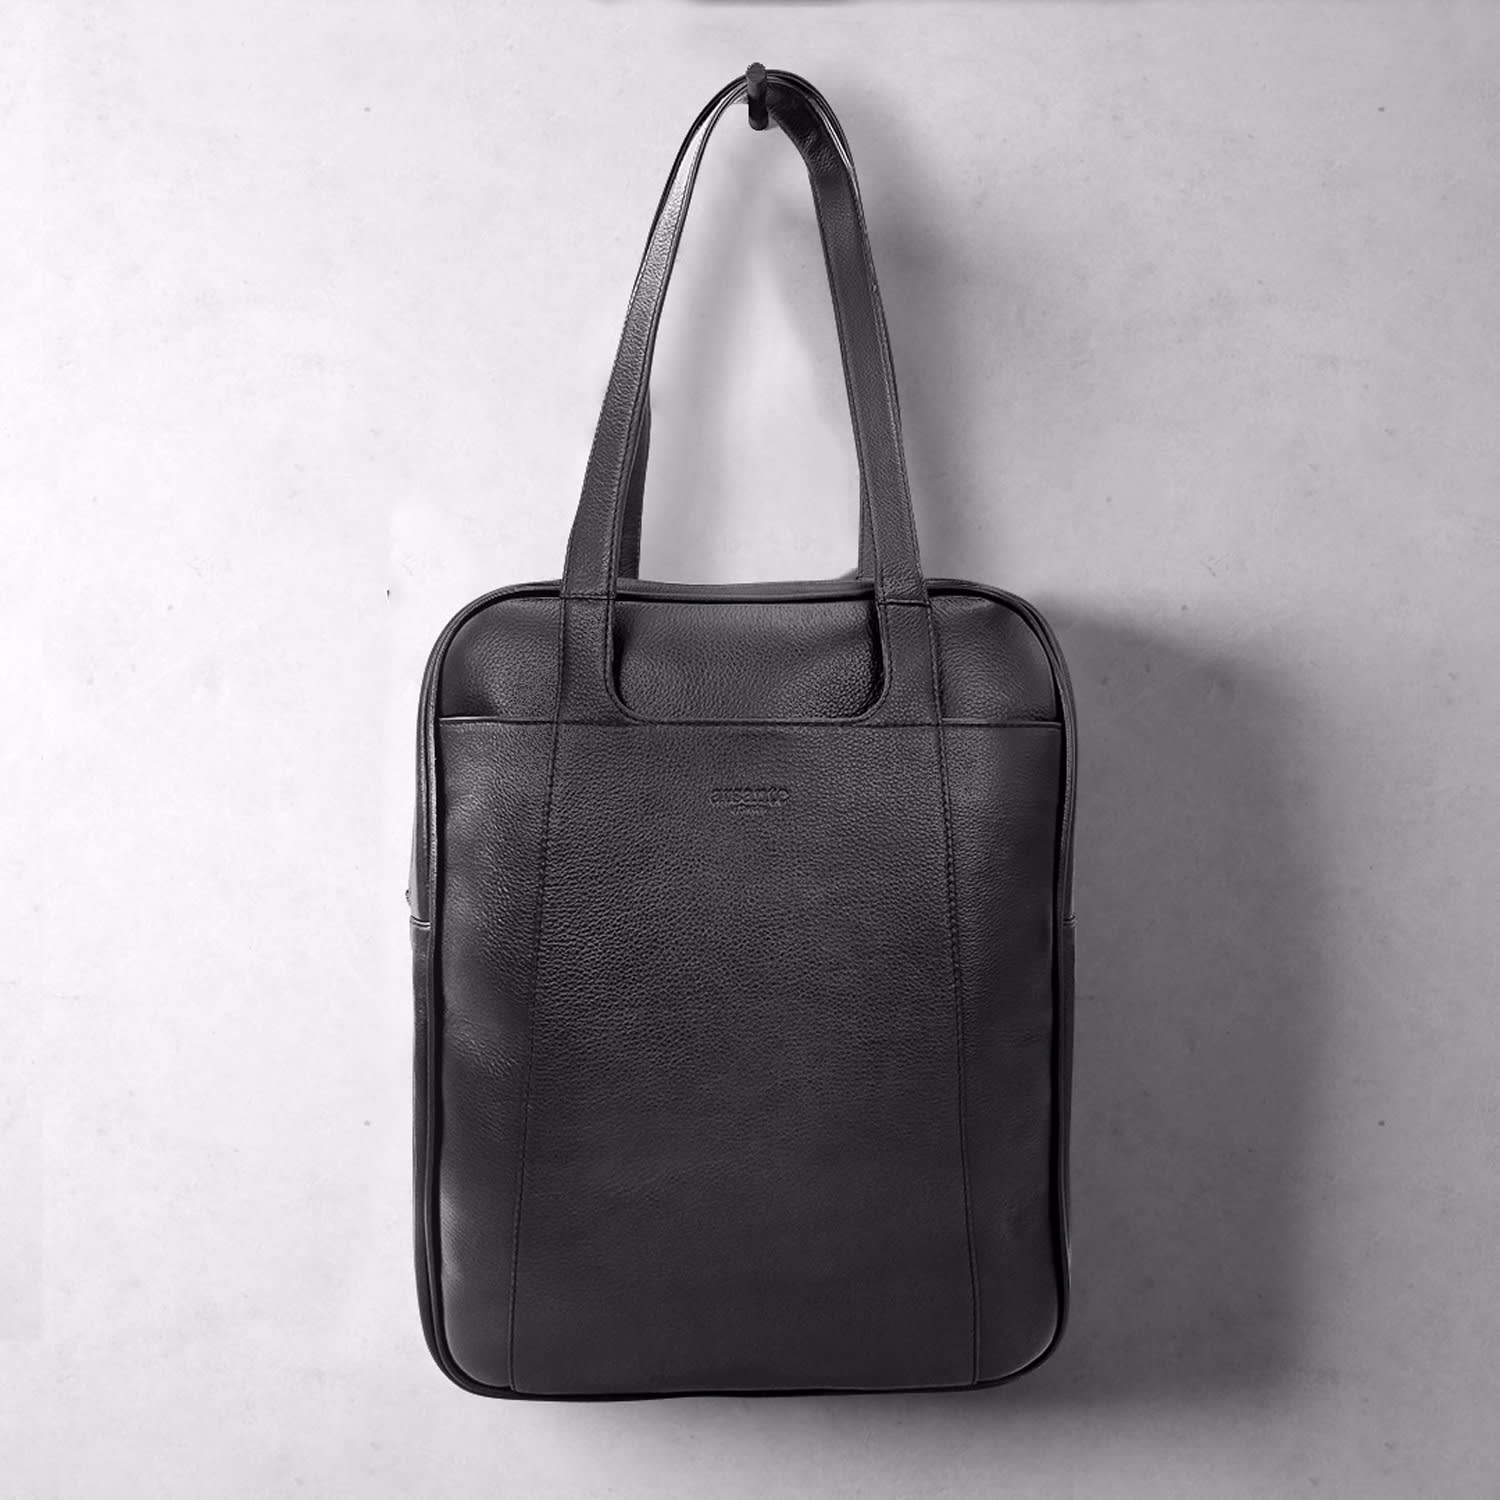 9d6e5d90d1 Handmade Leather Tote Bag Women image